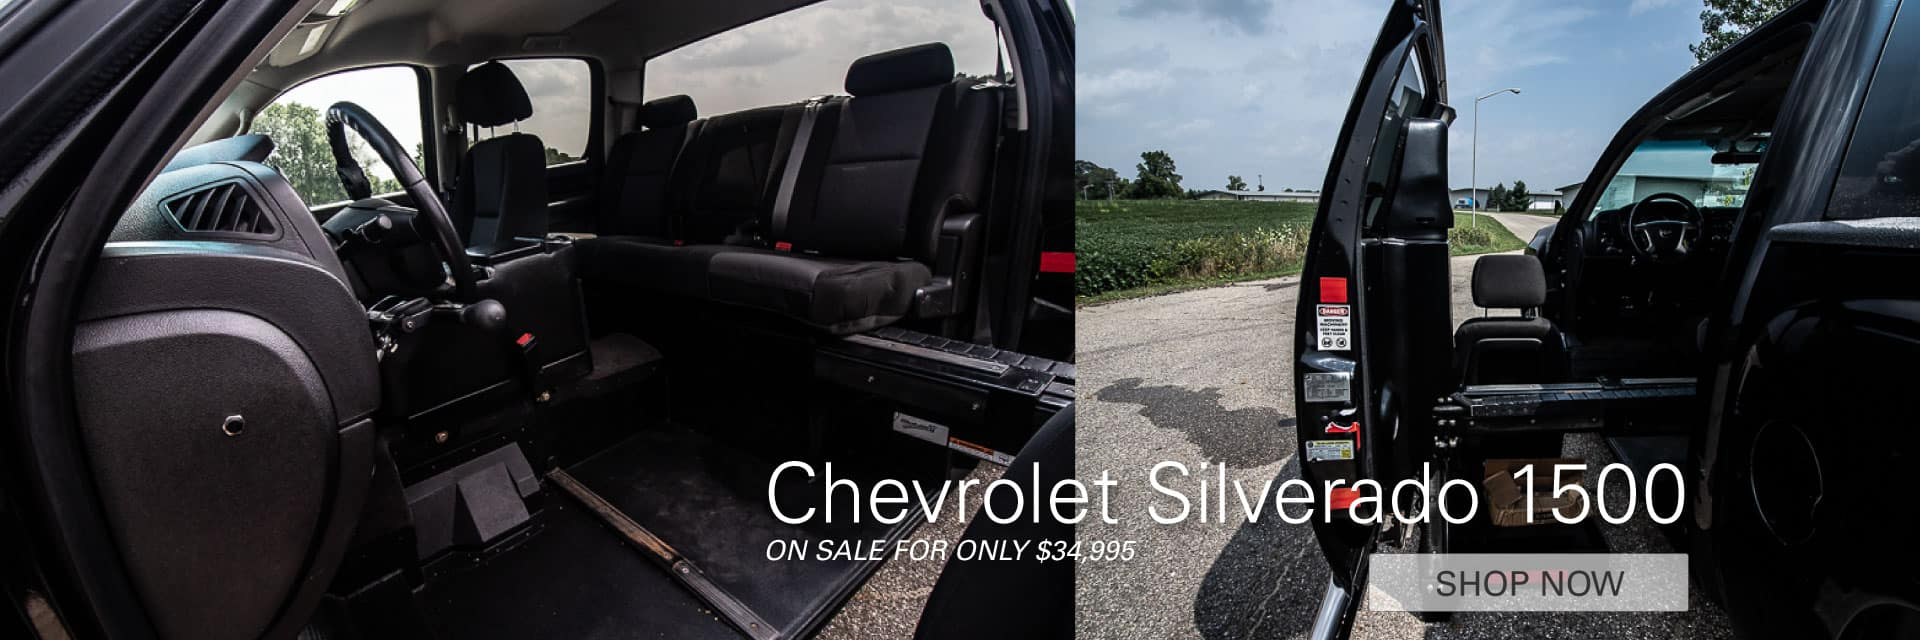 Chevy Silverado On Sale For Only $34,995